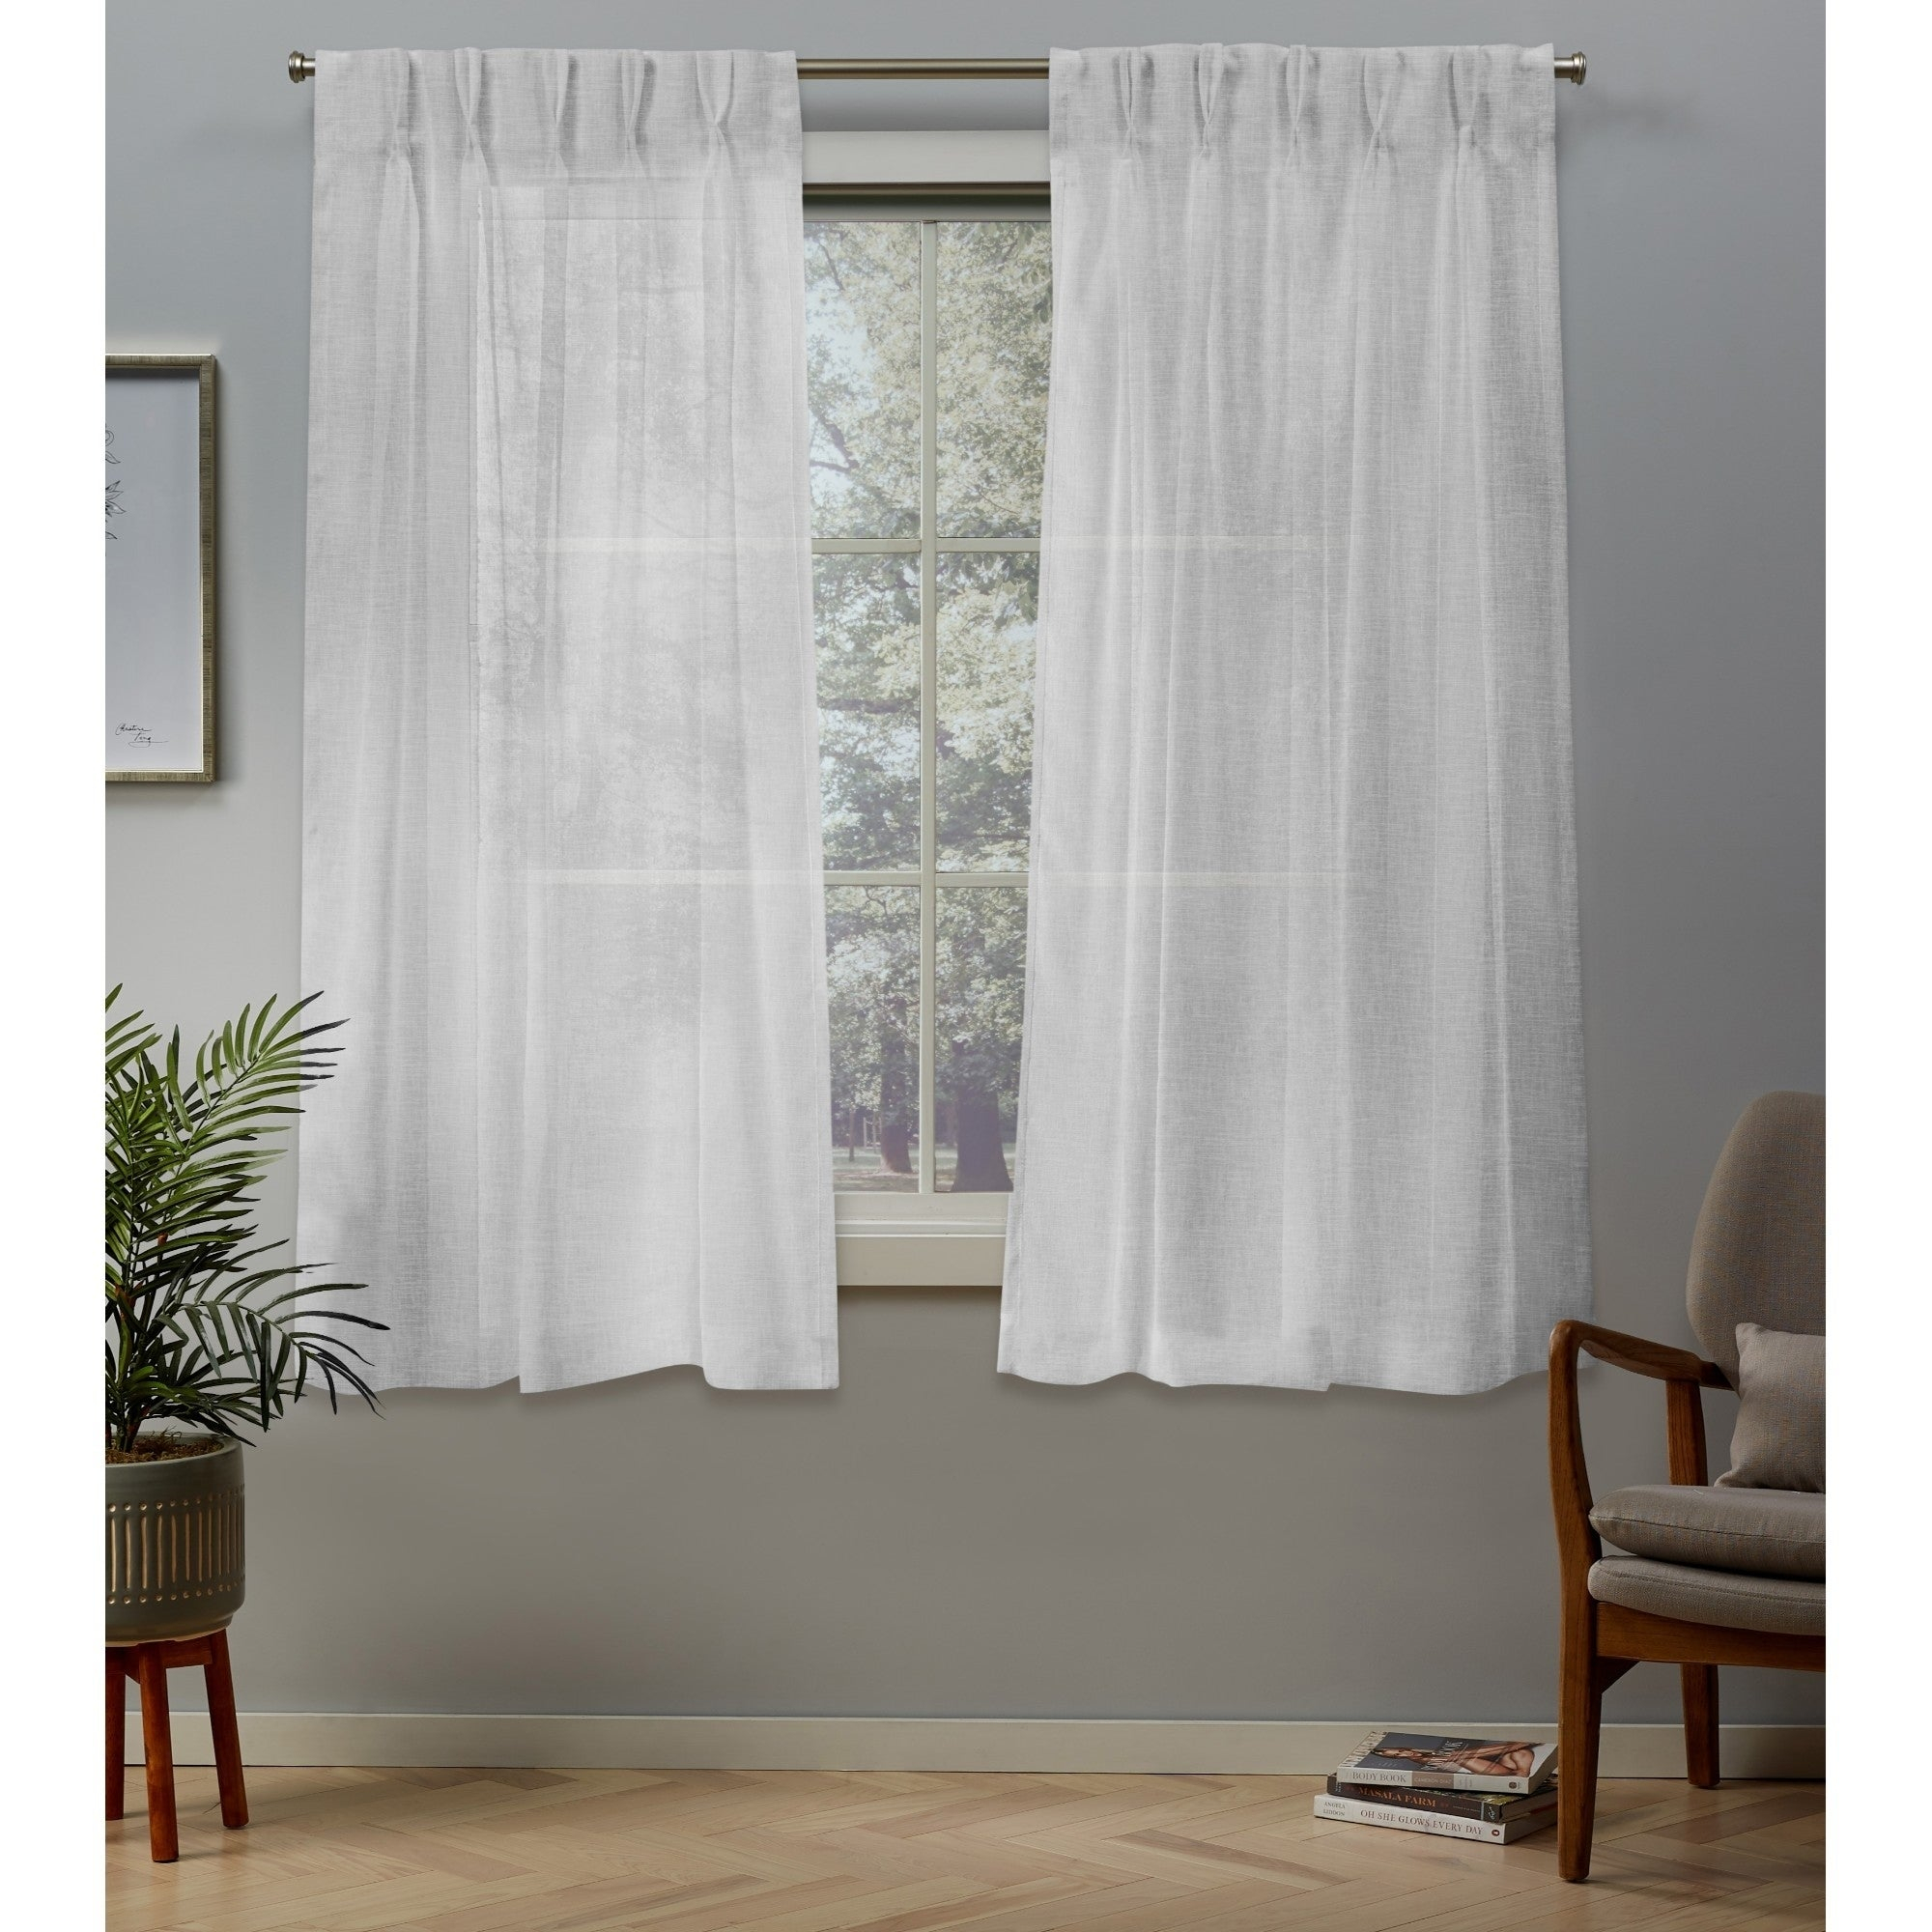 Ati Home Belgian Jacquard Sheer Double Pinch Pleat Top Curtain Panel Pair Pertaining To Double Pinch Pleat Top Curtain Panel Pairs (View 2 of 20)